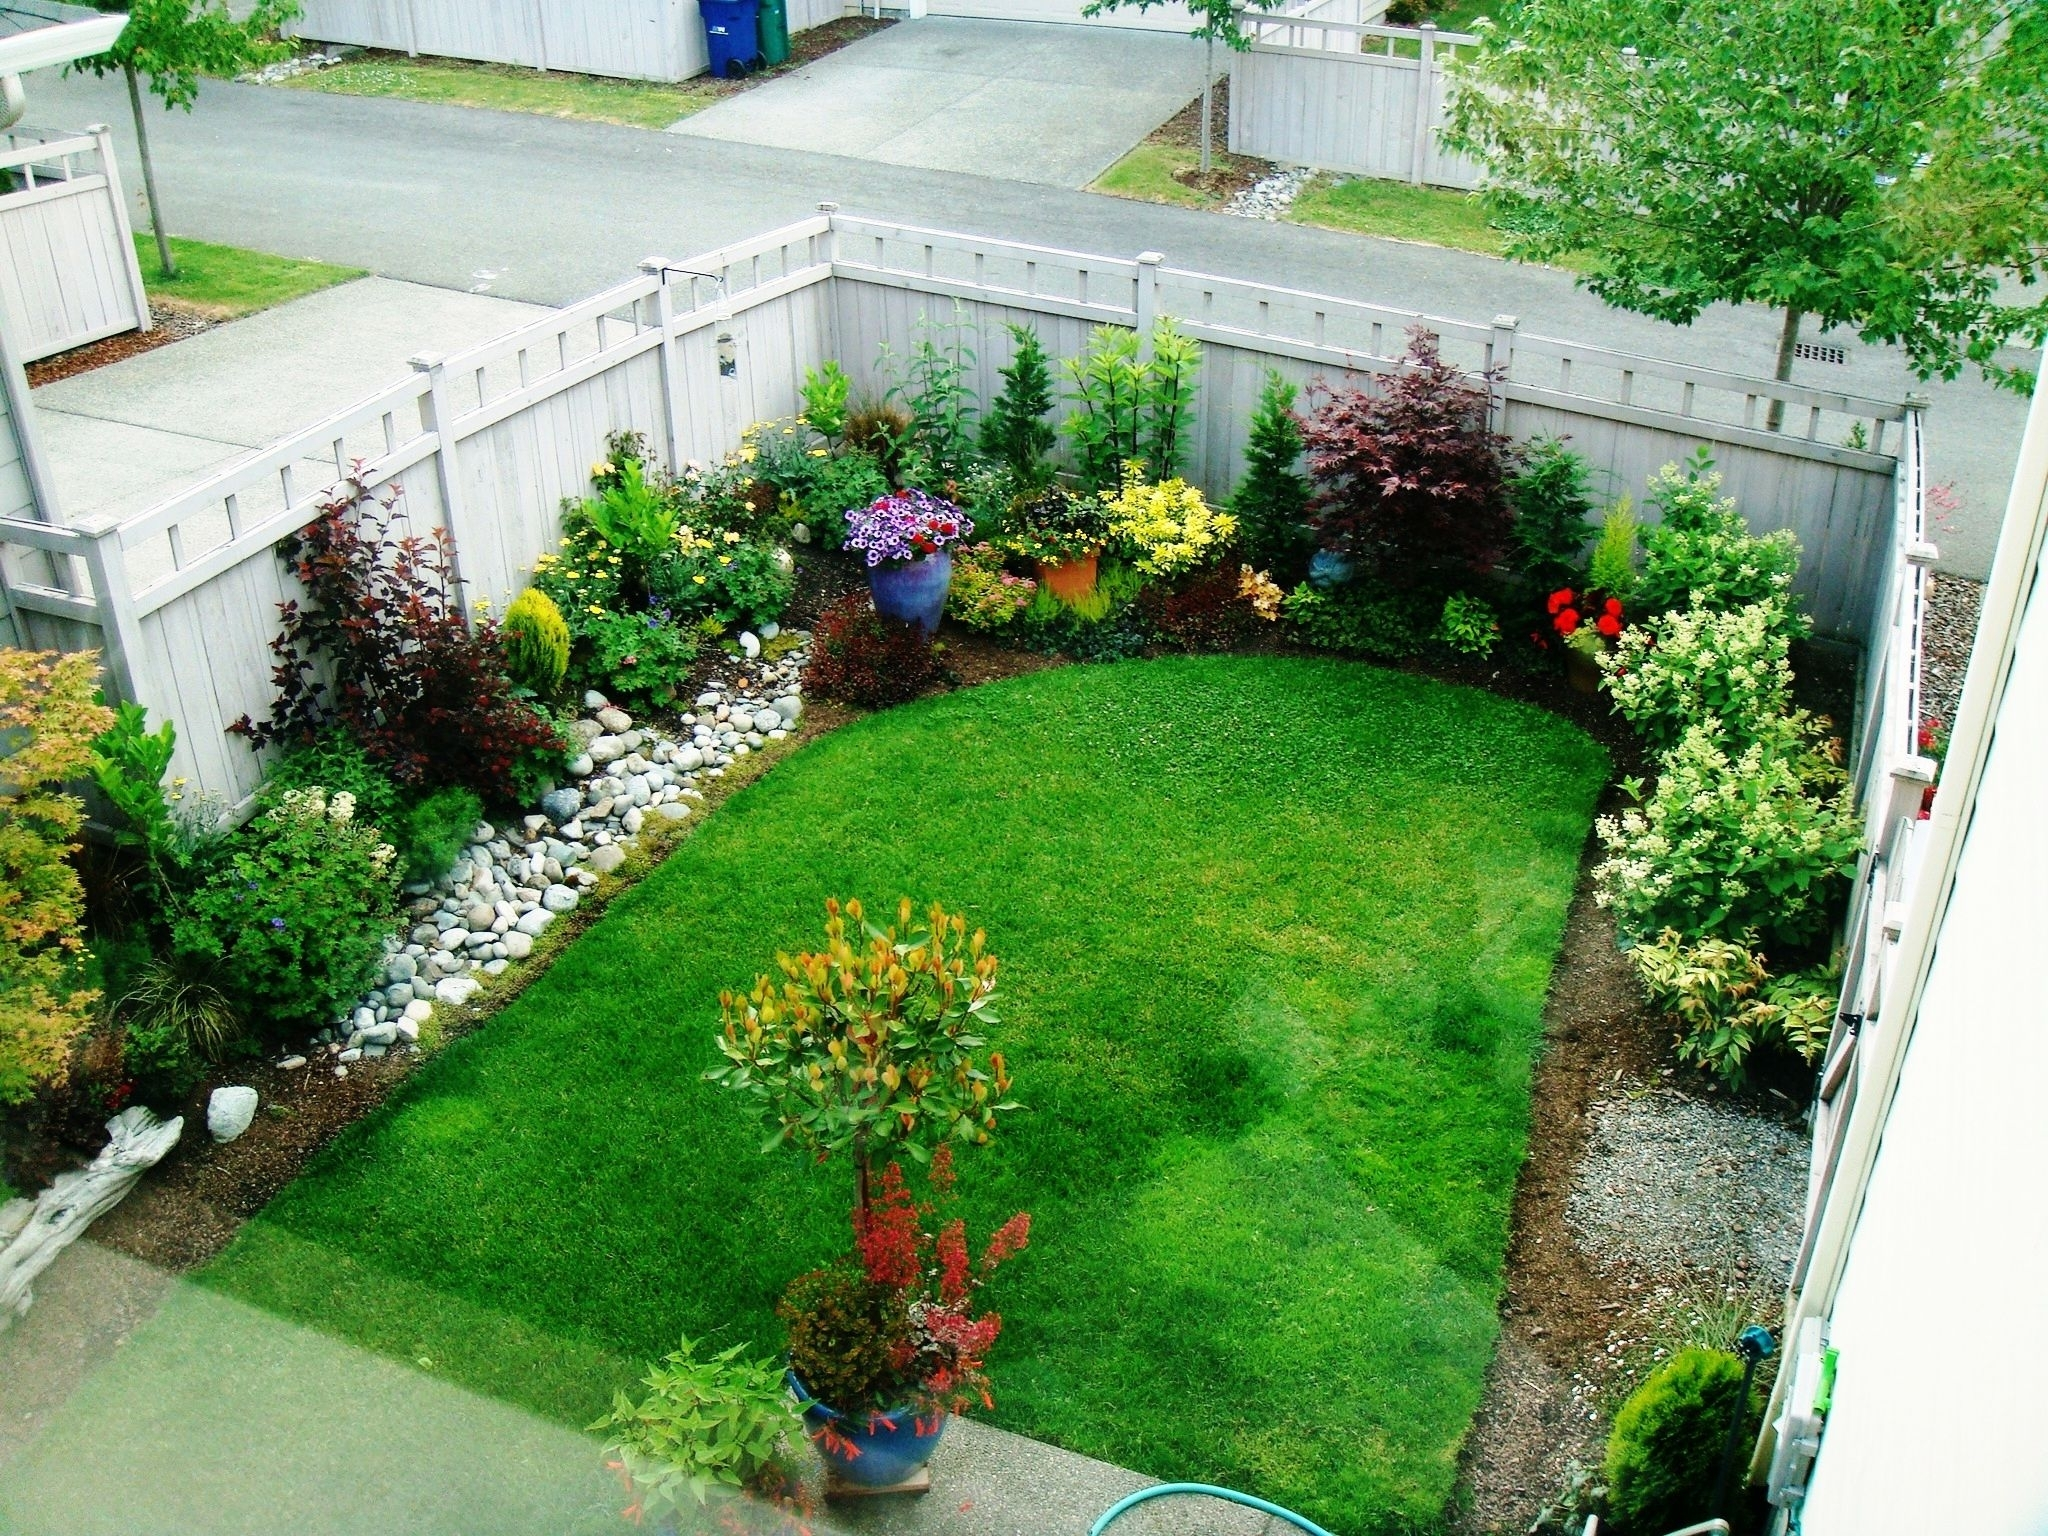 Is Your Yard Or Garden Small On Space? Get Big Tips And Ideas On with Best Layout For Small Garden Design Ideas Design Ideas